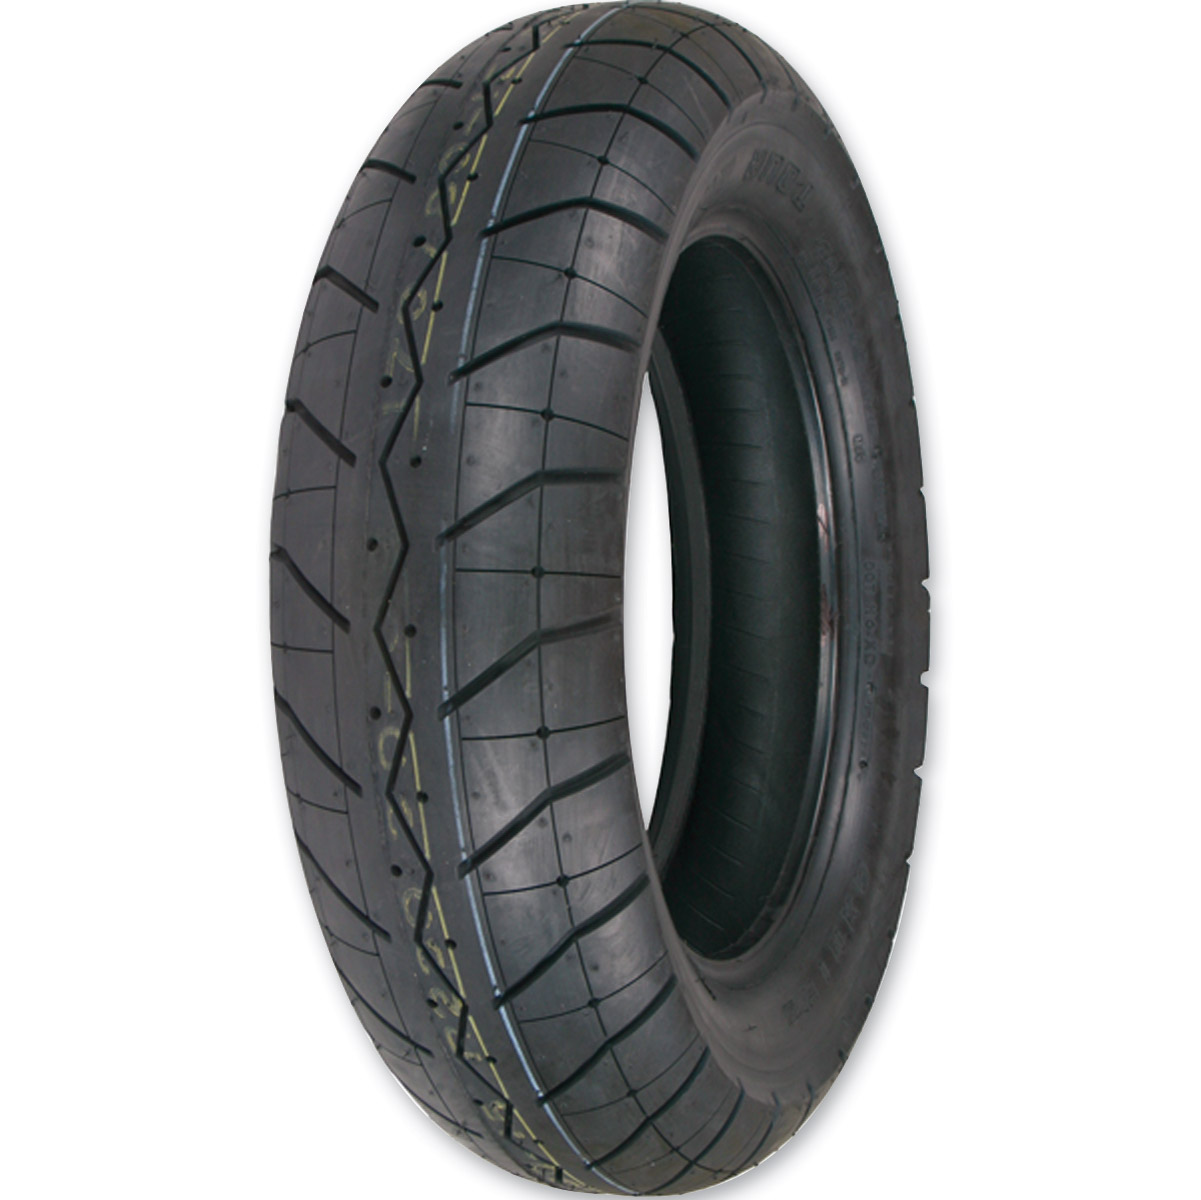 Shinko 230 Tour Master 170/80-15 Rear Tire